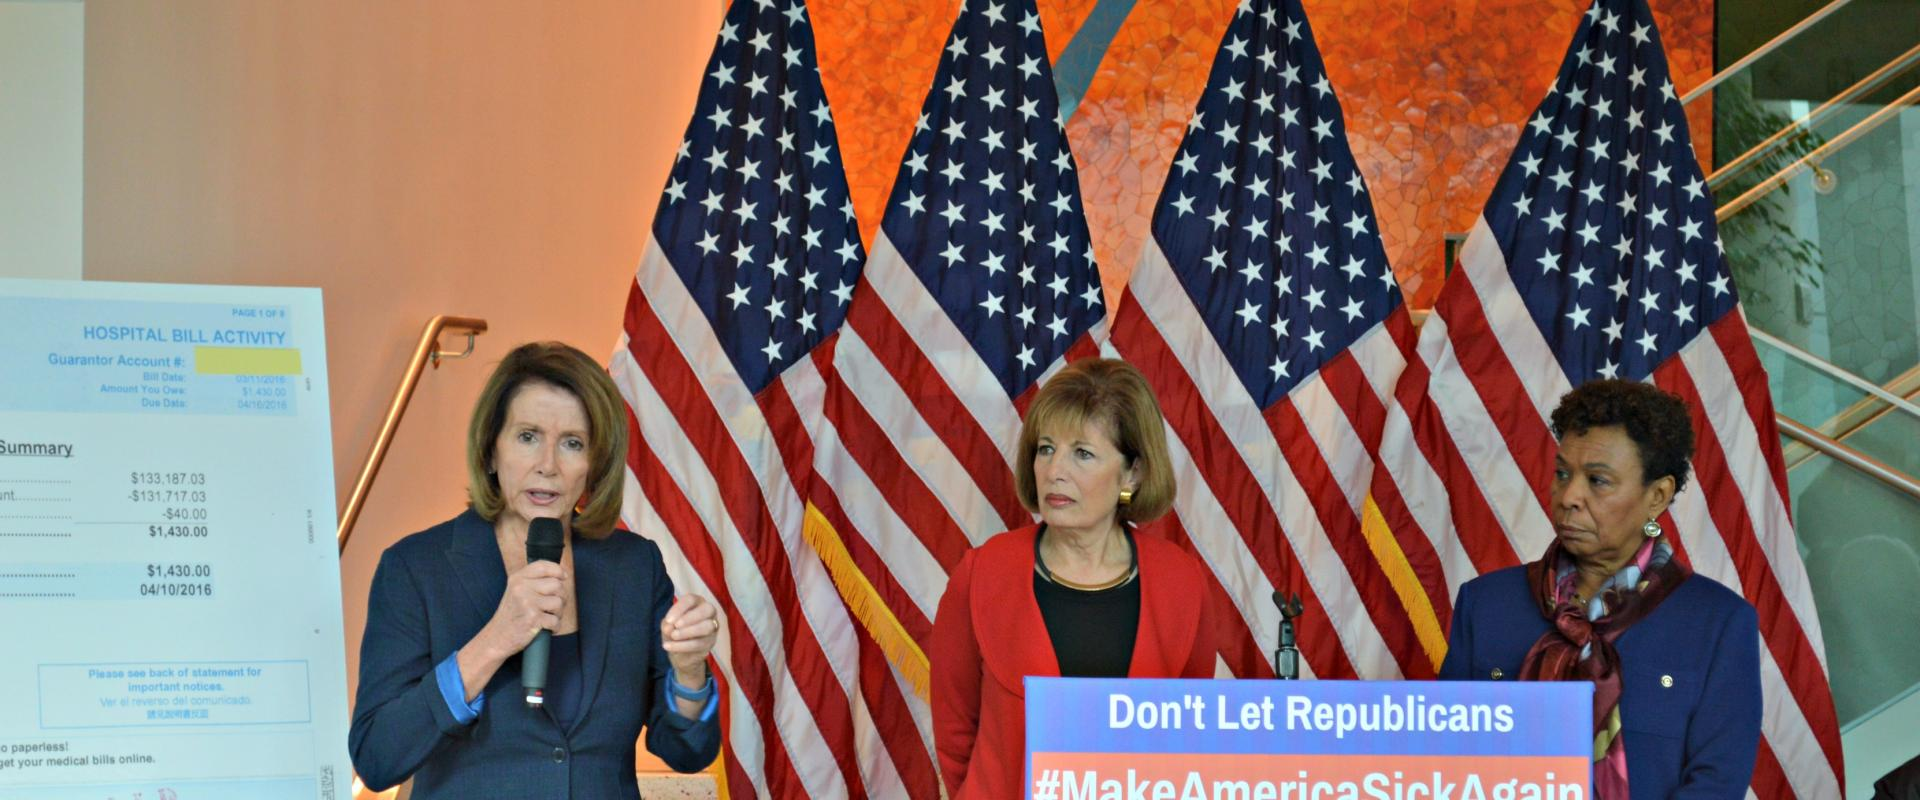 Congresswomen Nancy Pelosi, Jackie Speier, and Barbara Lee join health care providers and Bay Area residents for a press conference on the harmful impact of Republicans' plans to dismantle the Affordable Care Act (ACA) and Make America Sick Again.  The AC